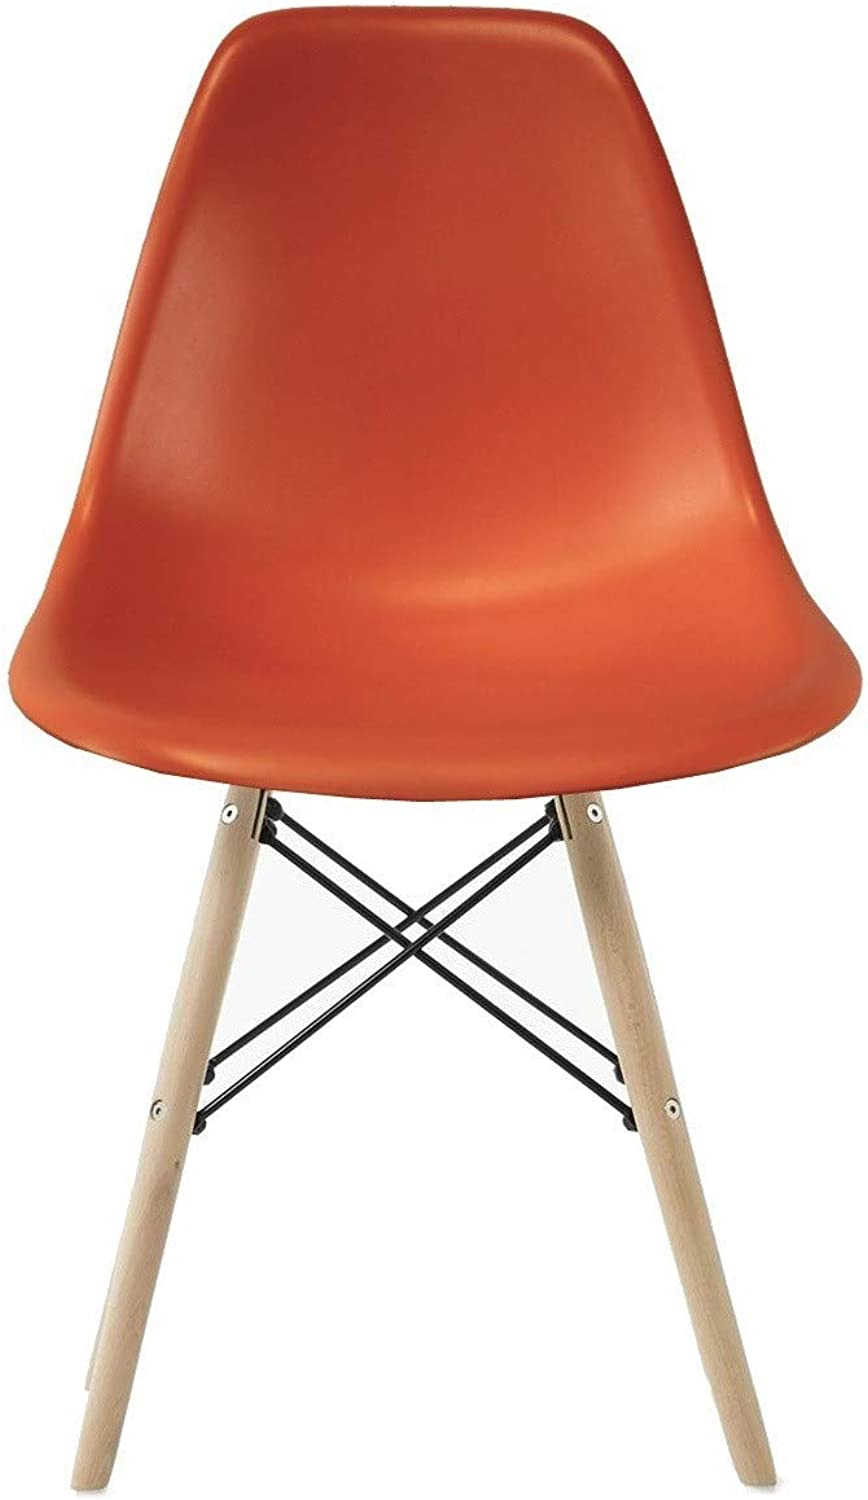 silver Import PDI-PC-0116W Eames Style Side Chair with Natural Wood Legs Eiffel Dining Room Chair, orange